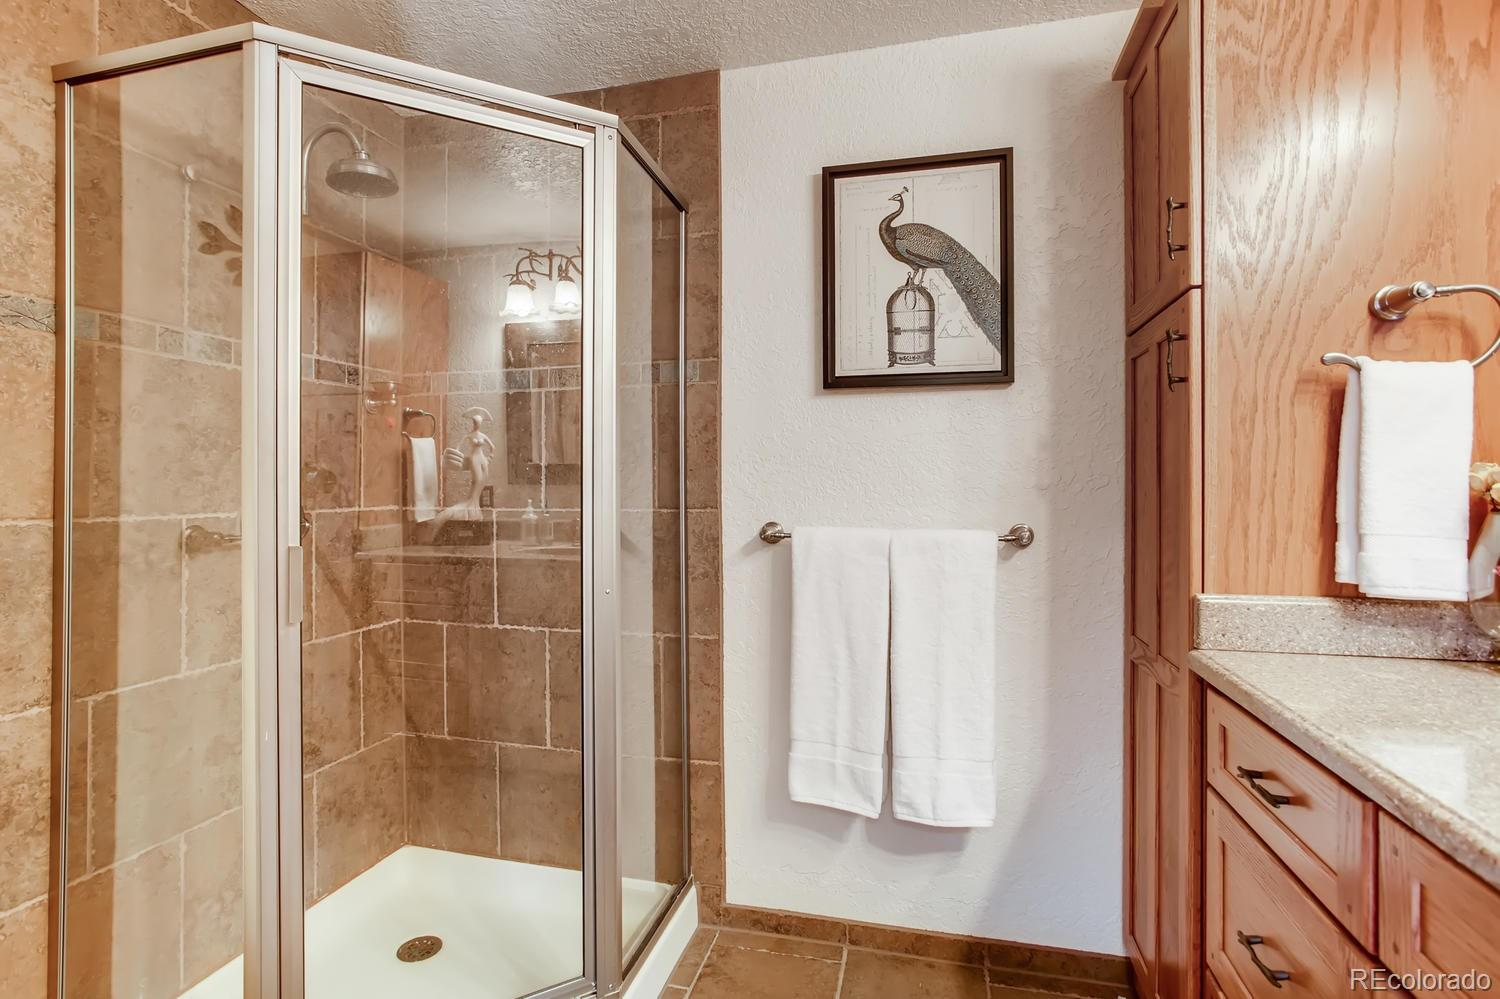 MLS# 4853831 - 10 - 13905 W 6th Place, Golden, CO 80401